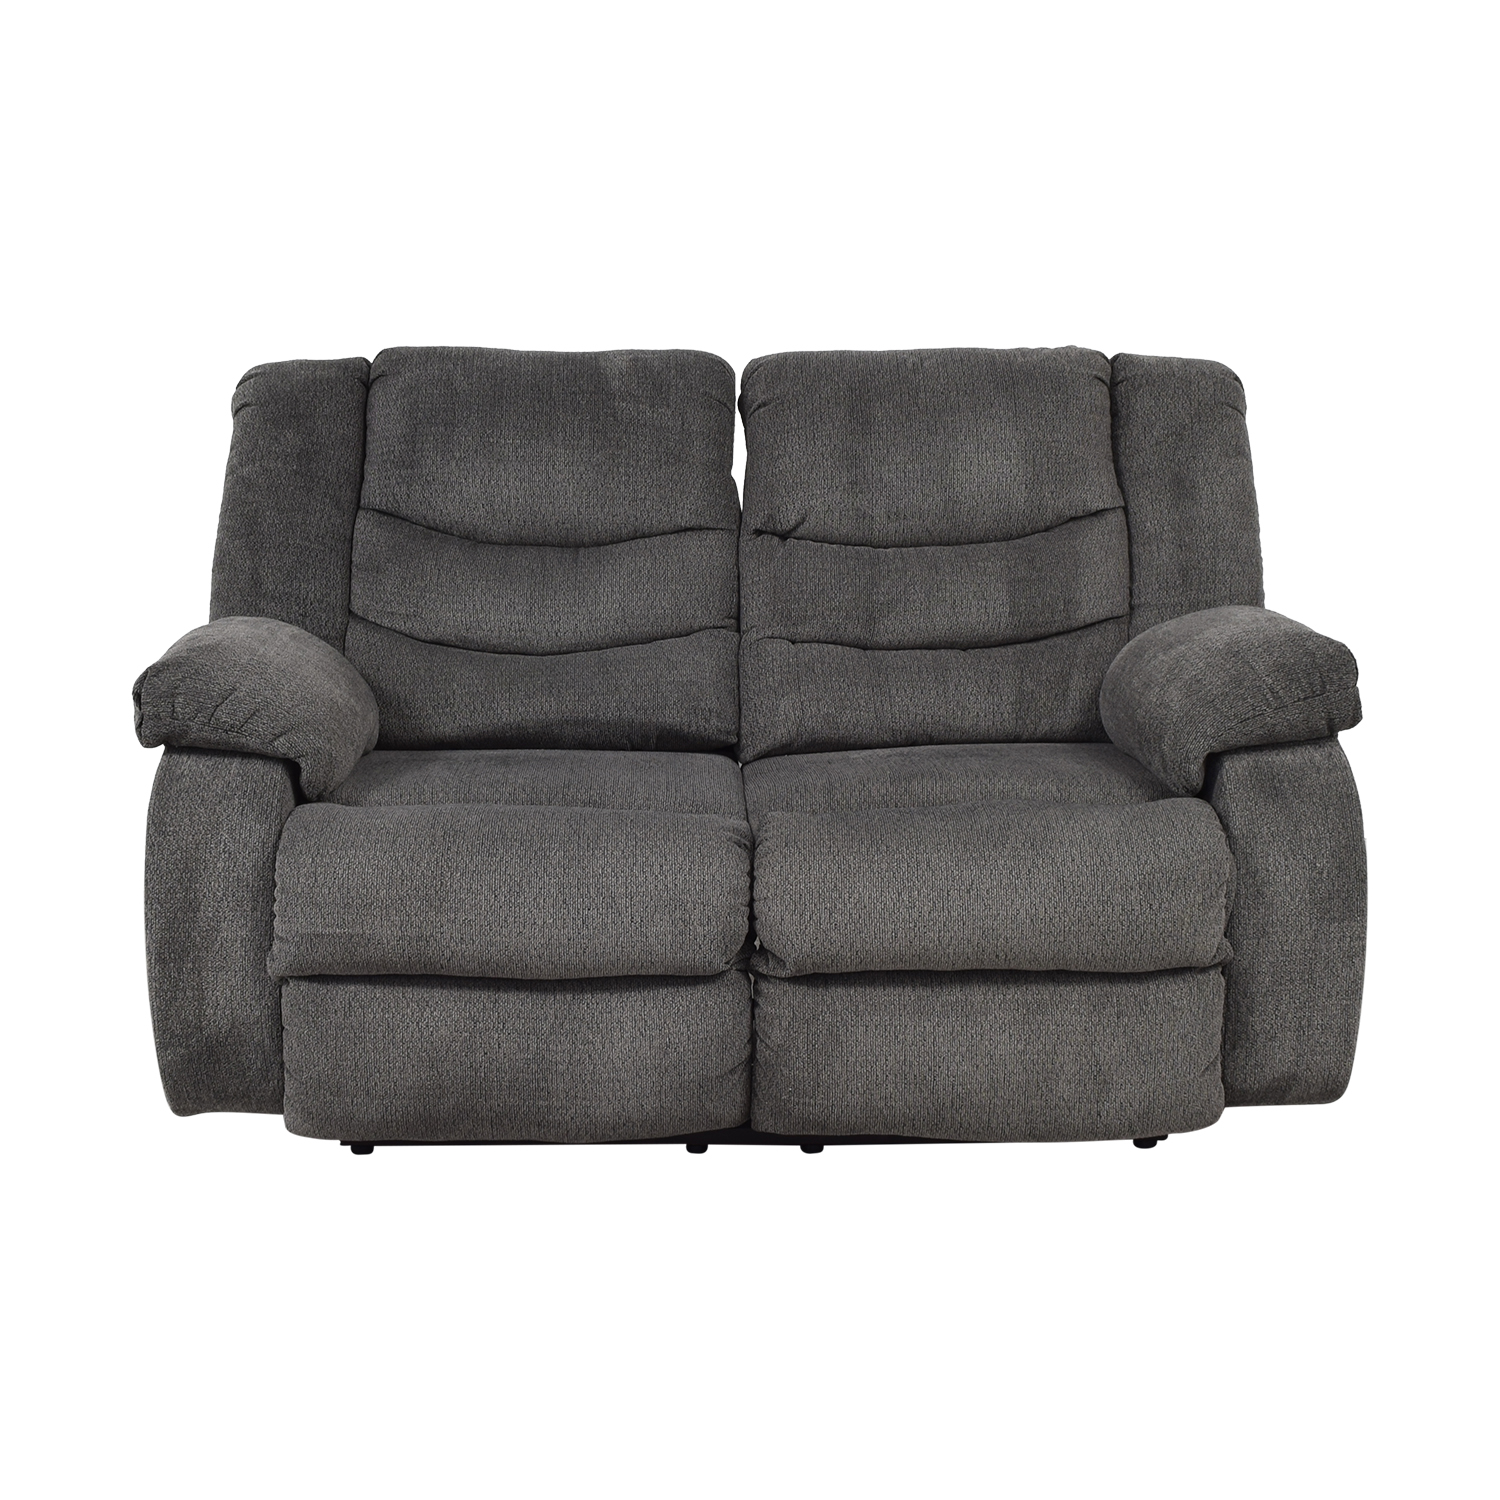 Surprising 71 Off Ashley Furniture Ashley Furniture Gray Reclining Loveseat Sofas Home Interior And Landscaping Ponolsignezvosmurscom